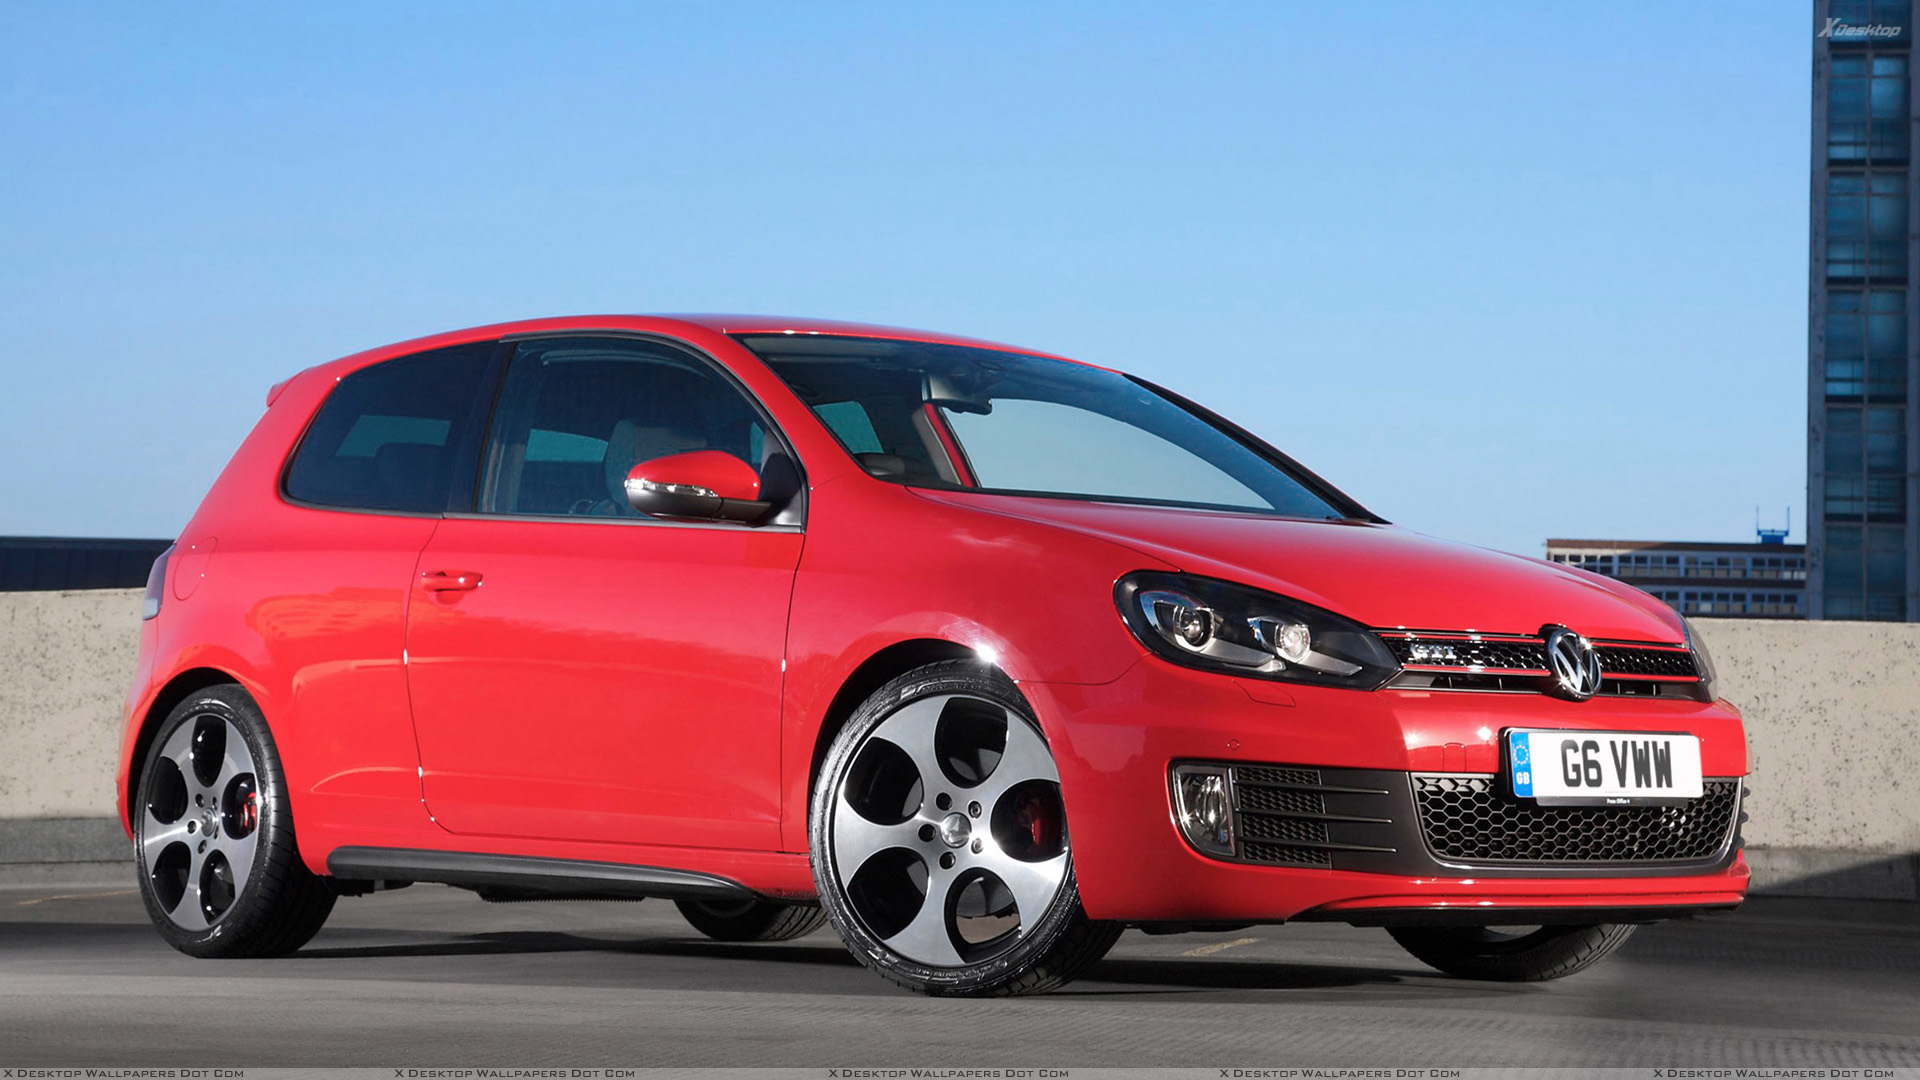 Wallpaper 03 together with 4 further Wallpaper 26 also Wallpaper 05 furthermore 7321351690. on vw gti wallpaper